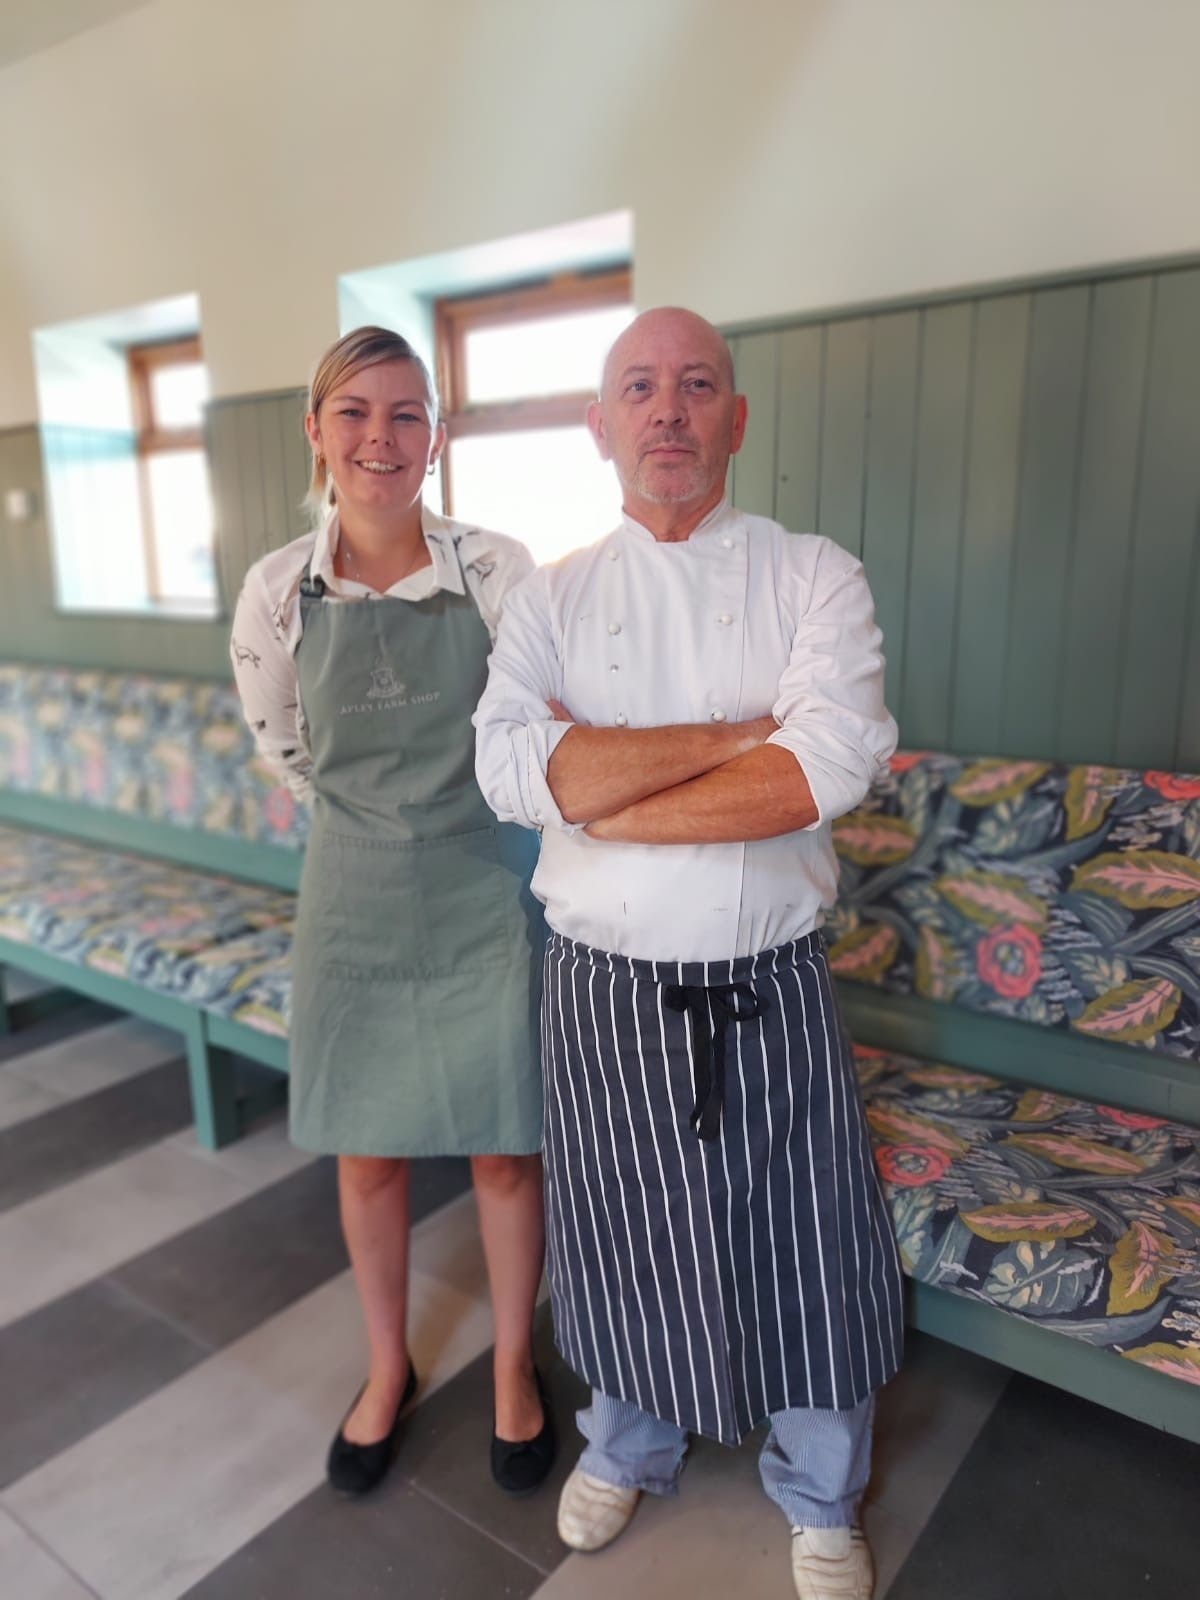 Cafe manager Carmel Bytheway and lead chef David Ames